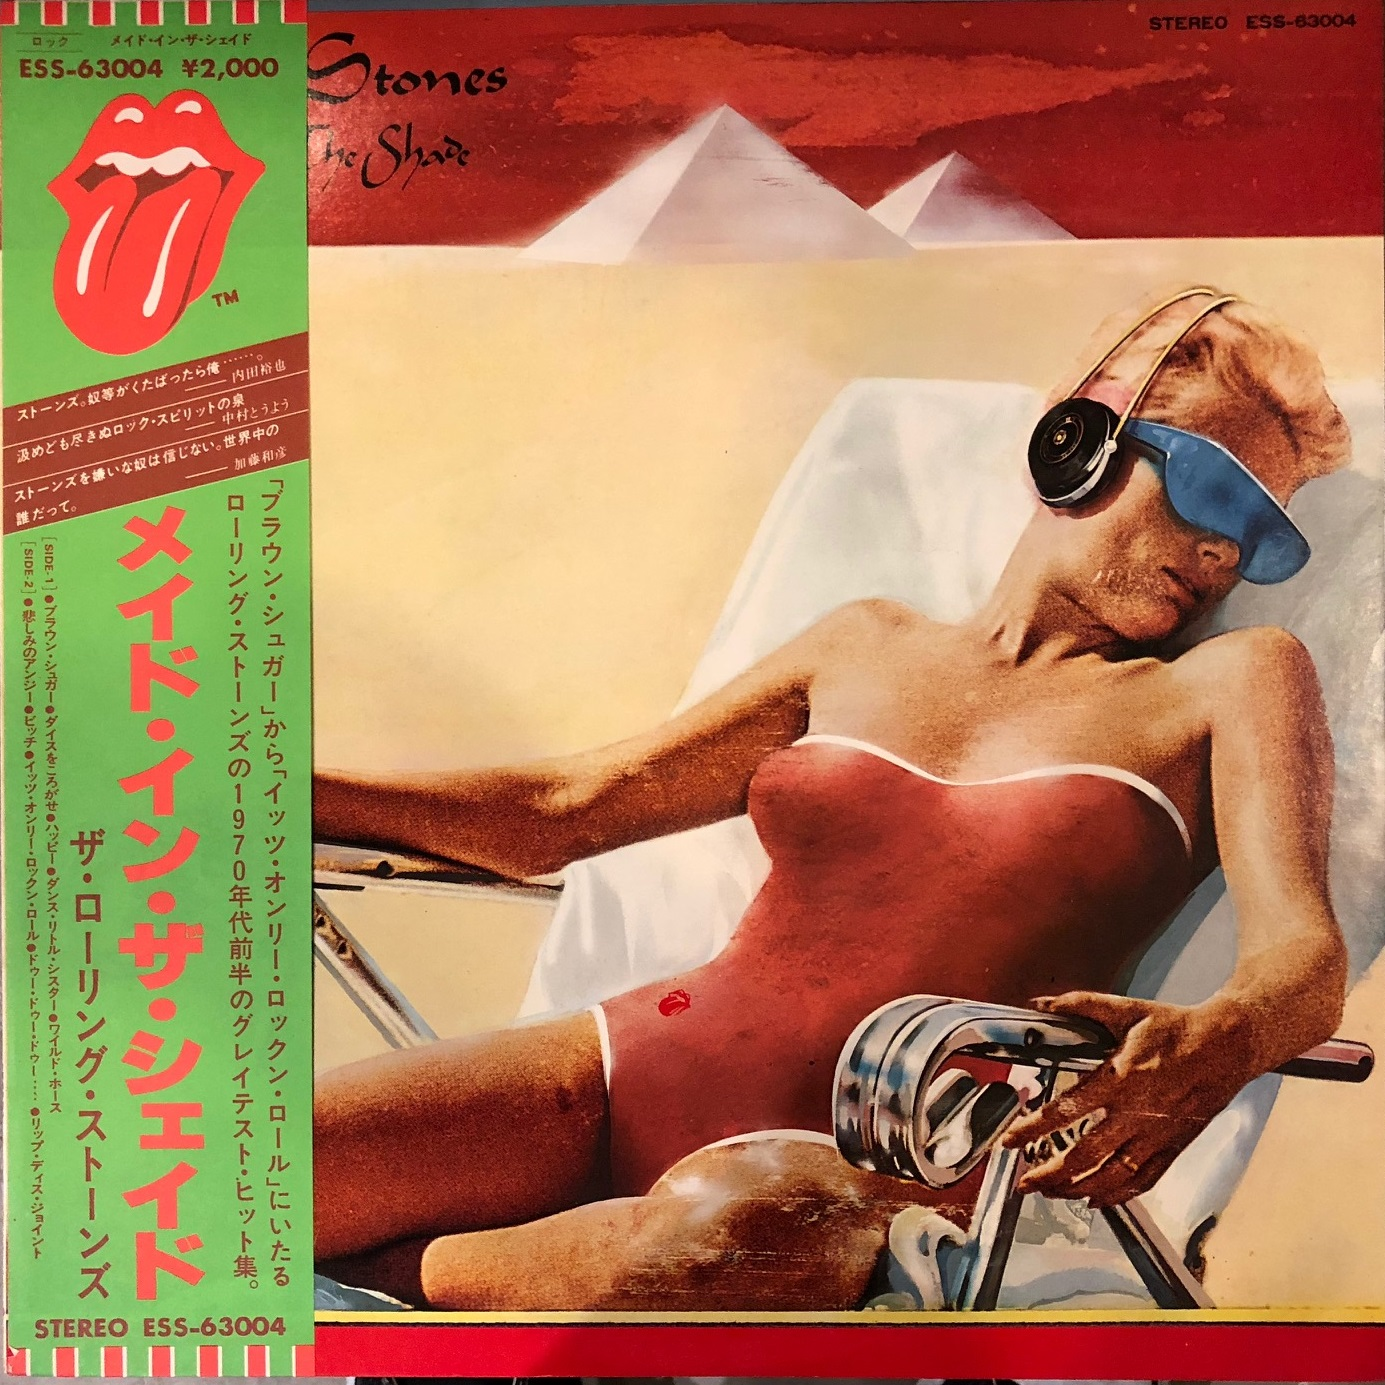 ROLLING STONES / MADE IN THE SHADE